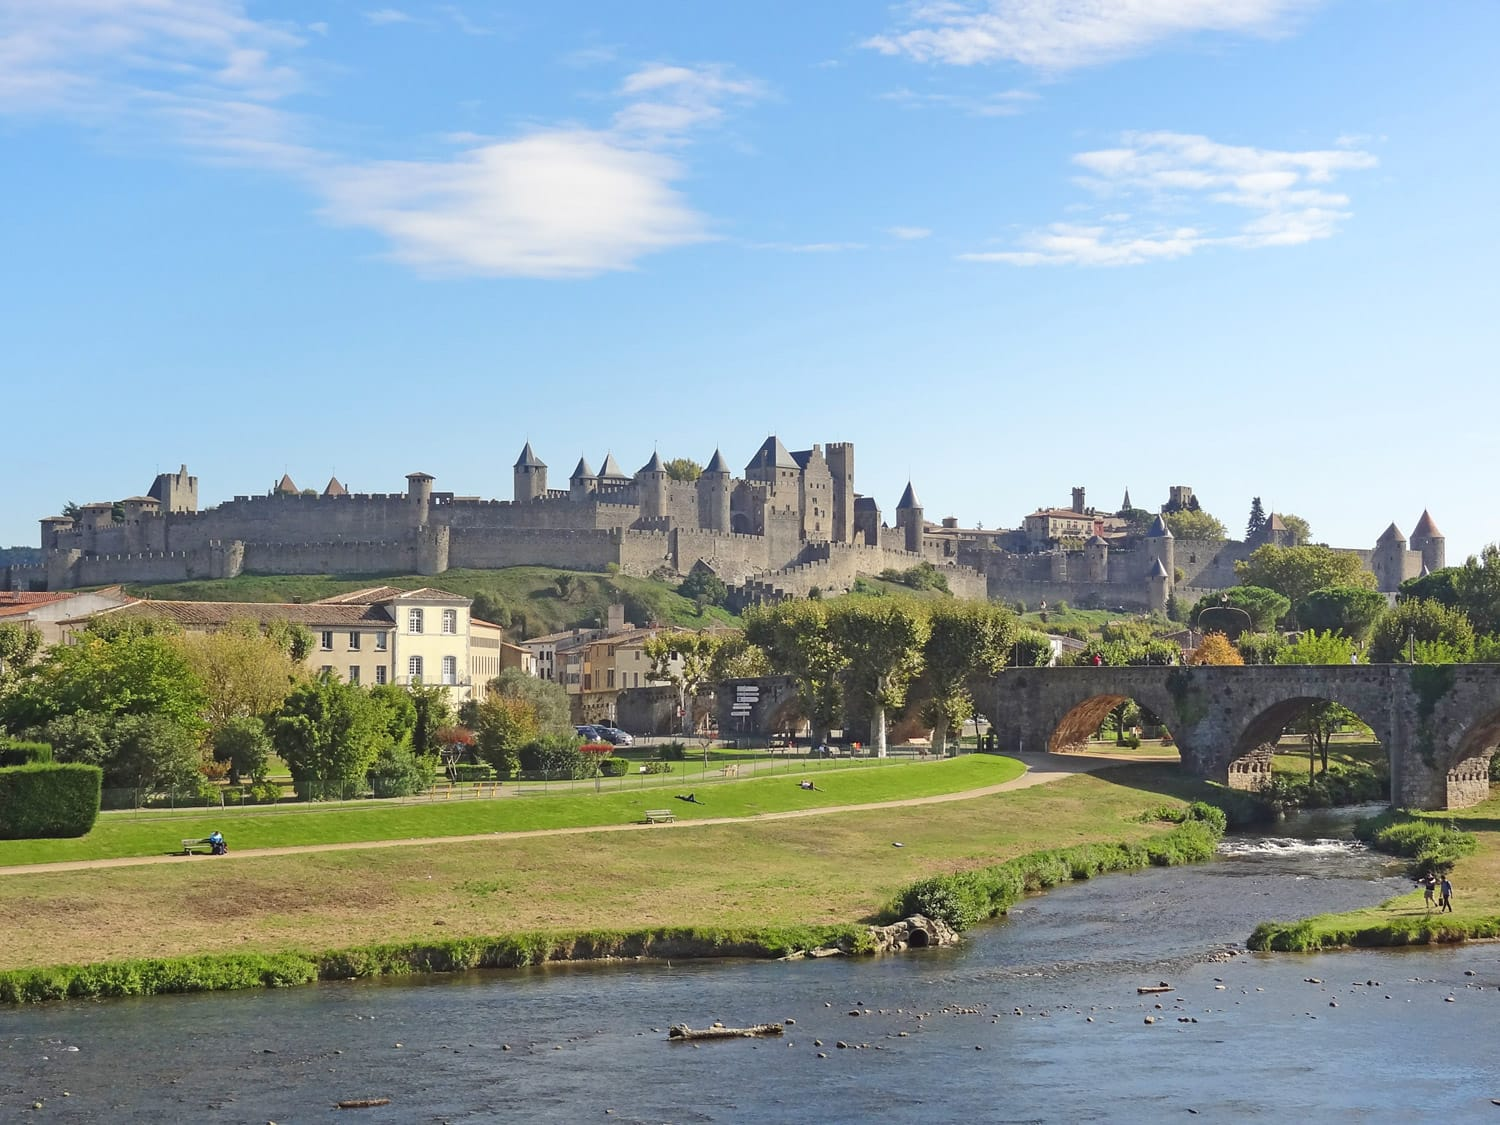 Medieval Citadel of Carcassonne